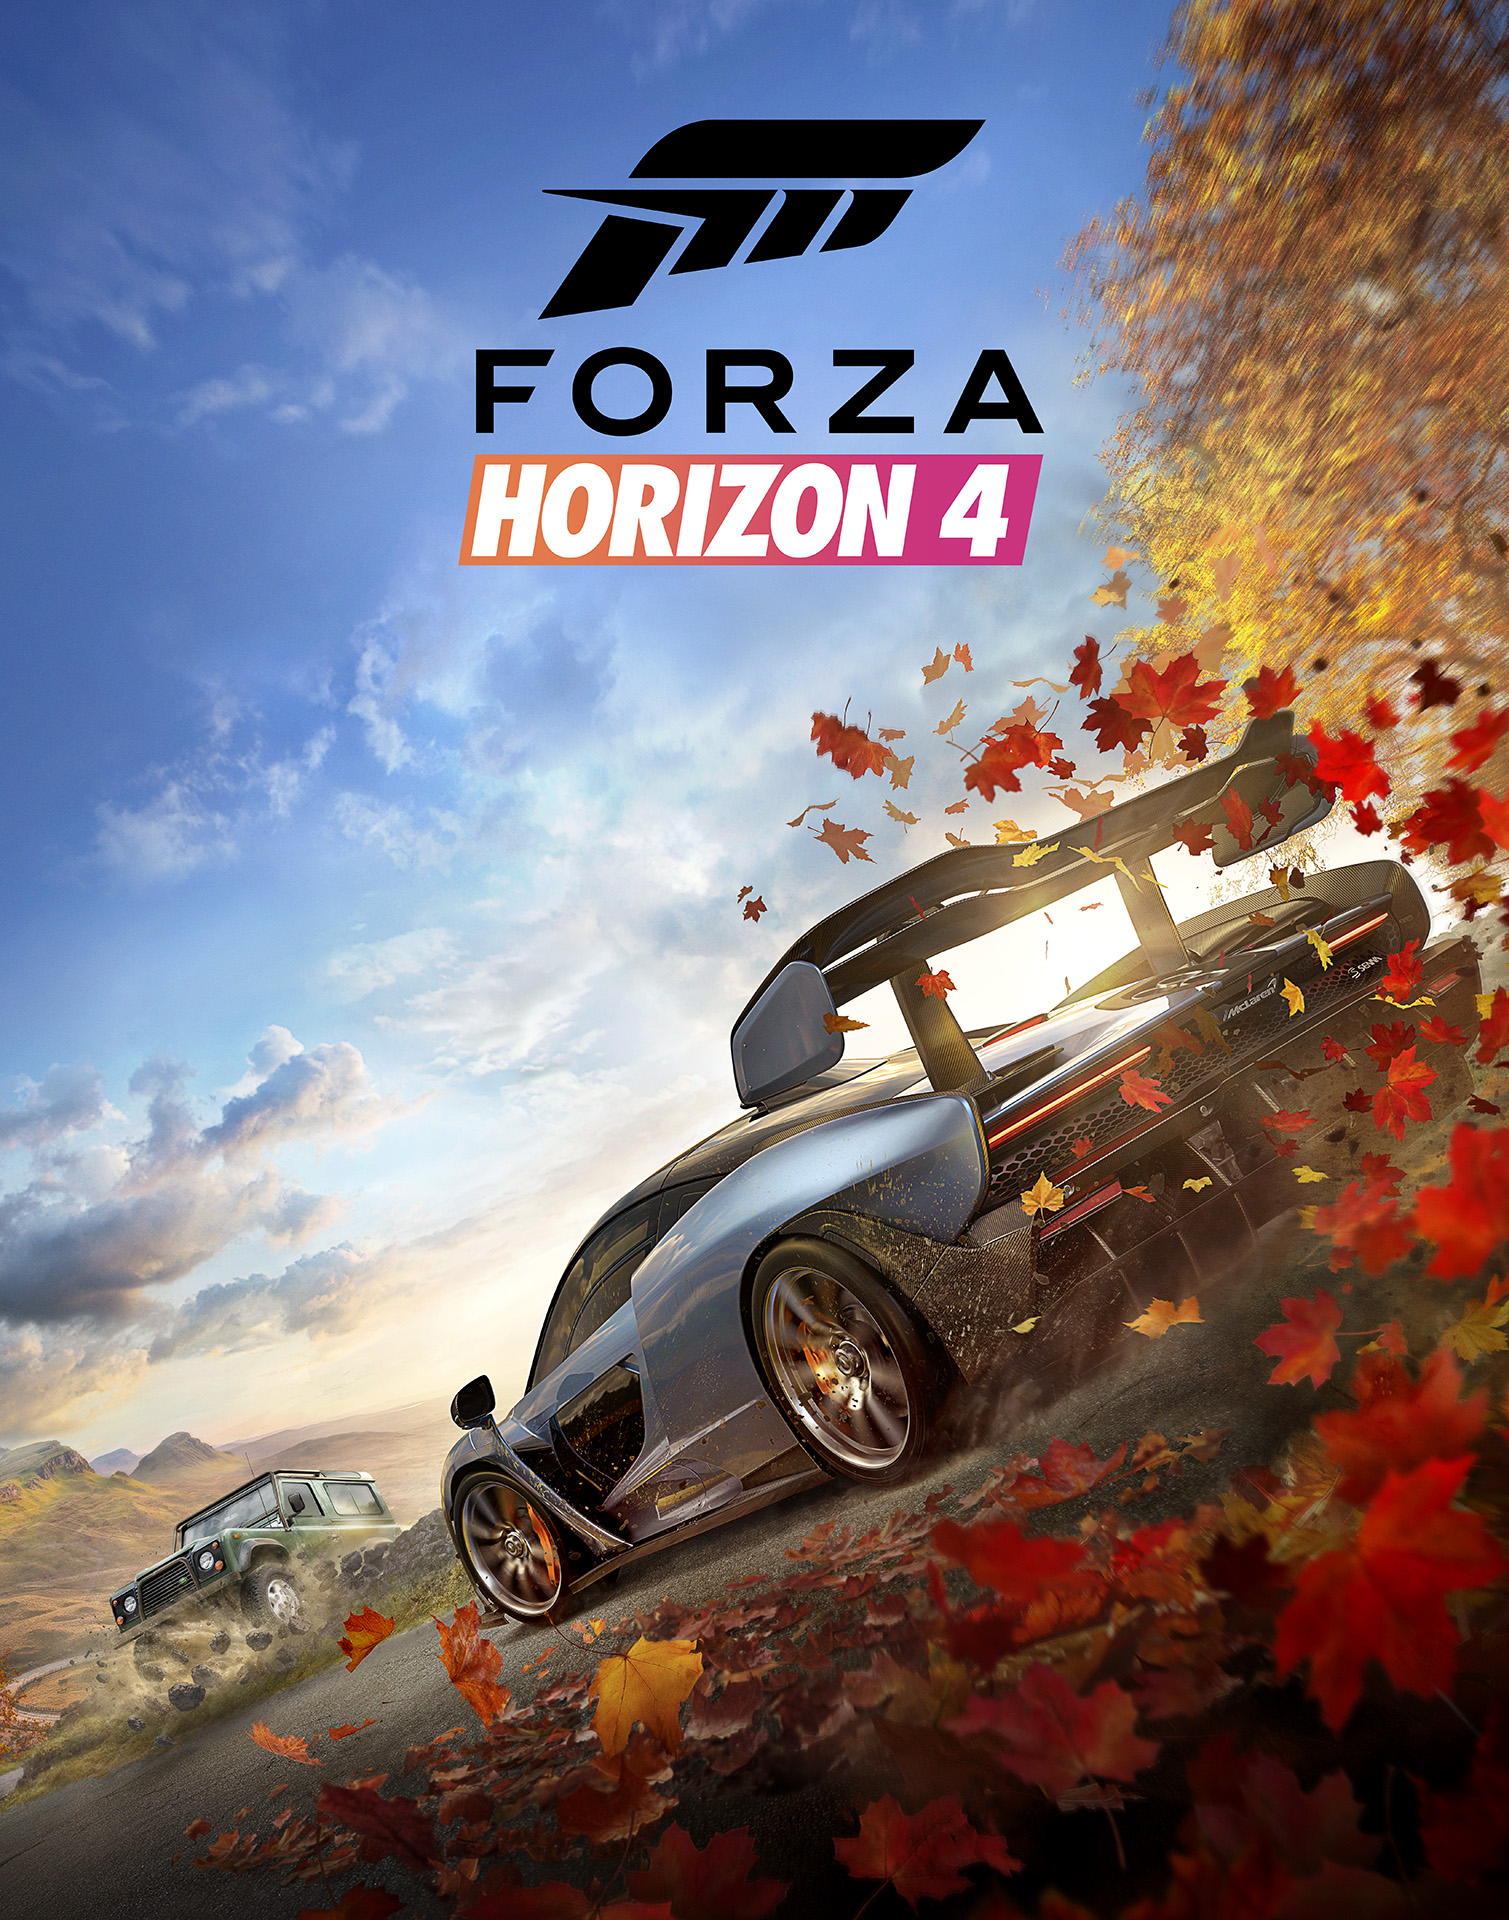 forza horizon 4 forza motorsport wiki fandom powered by wikia. Black Bedroom Furniture Sets. Home Design Ideas